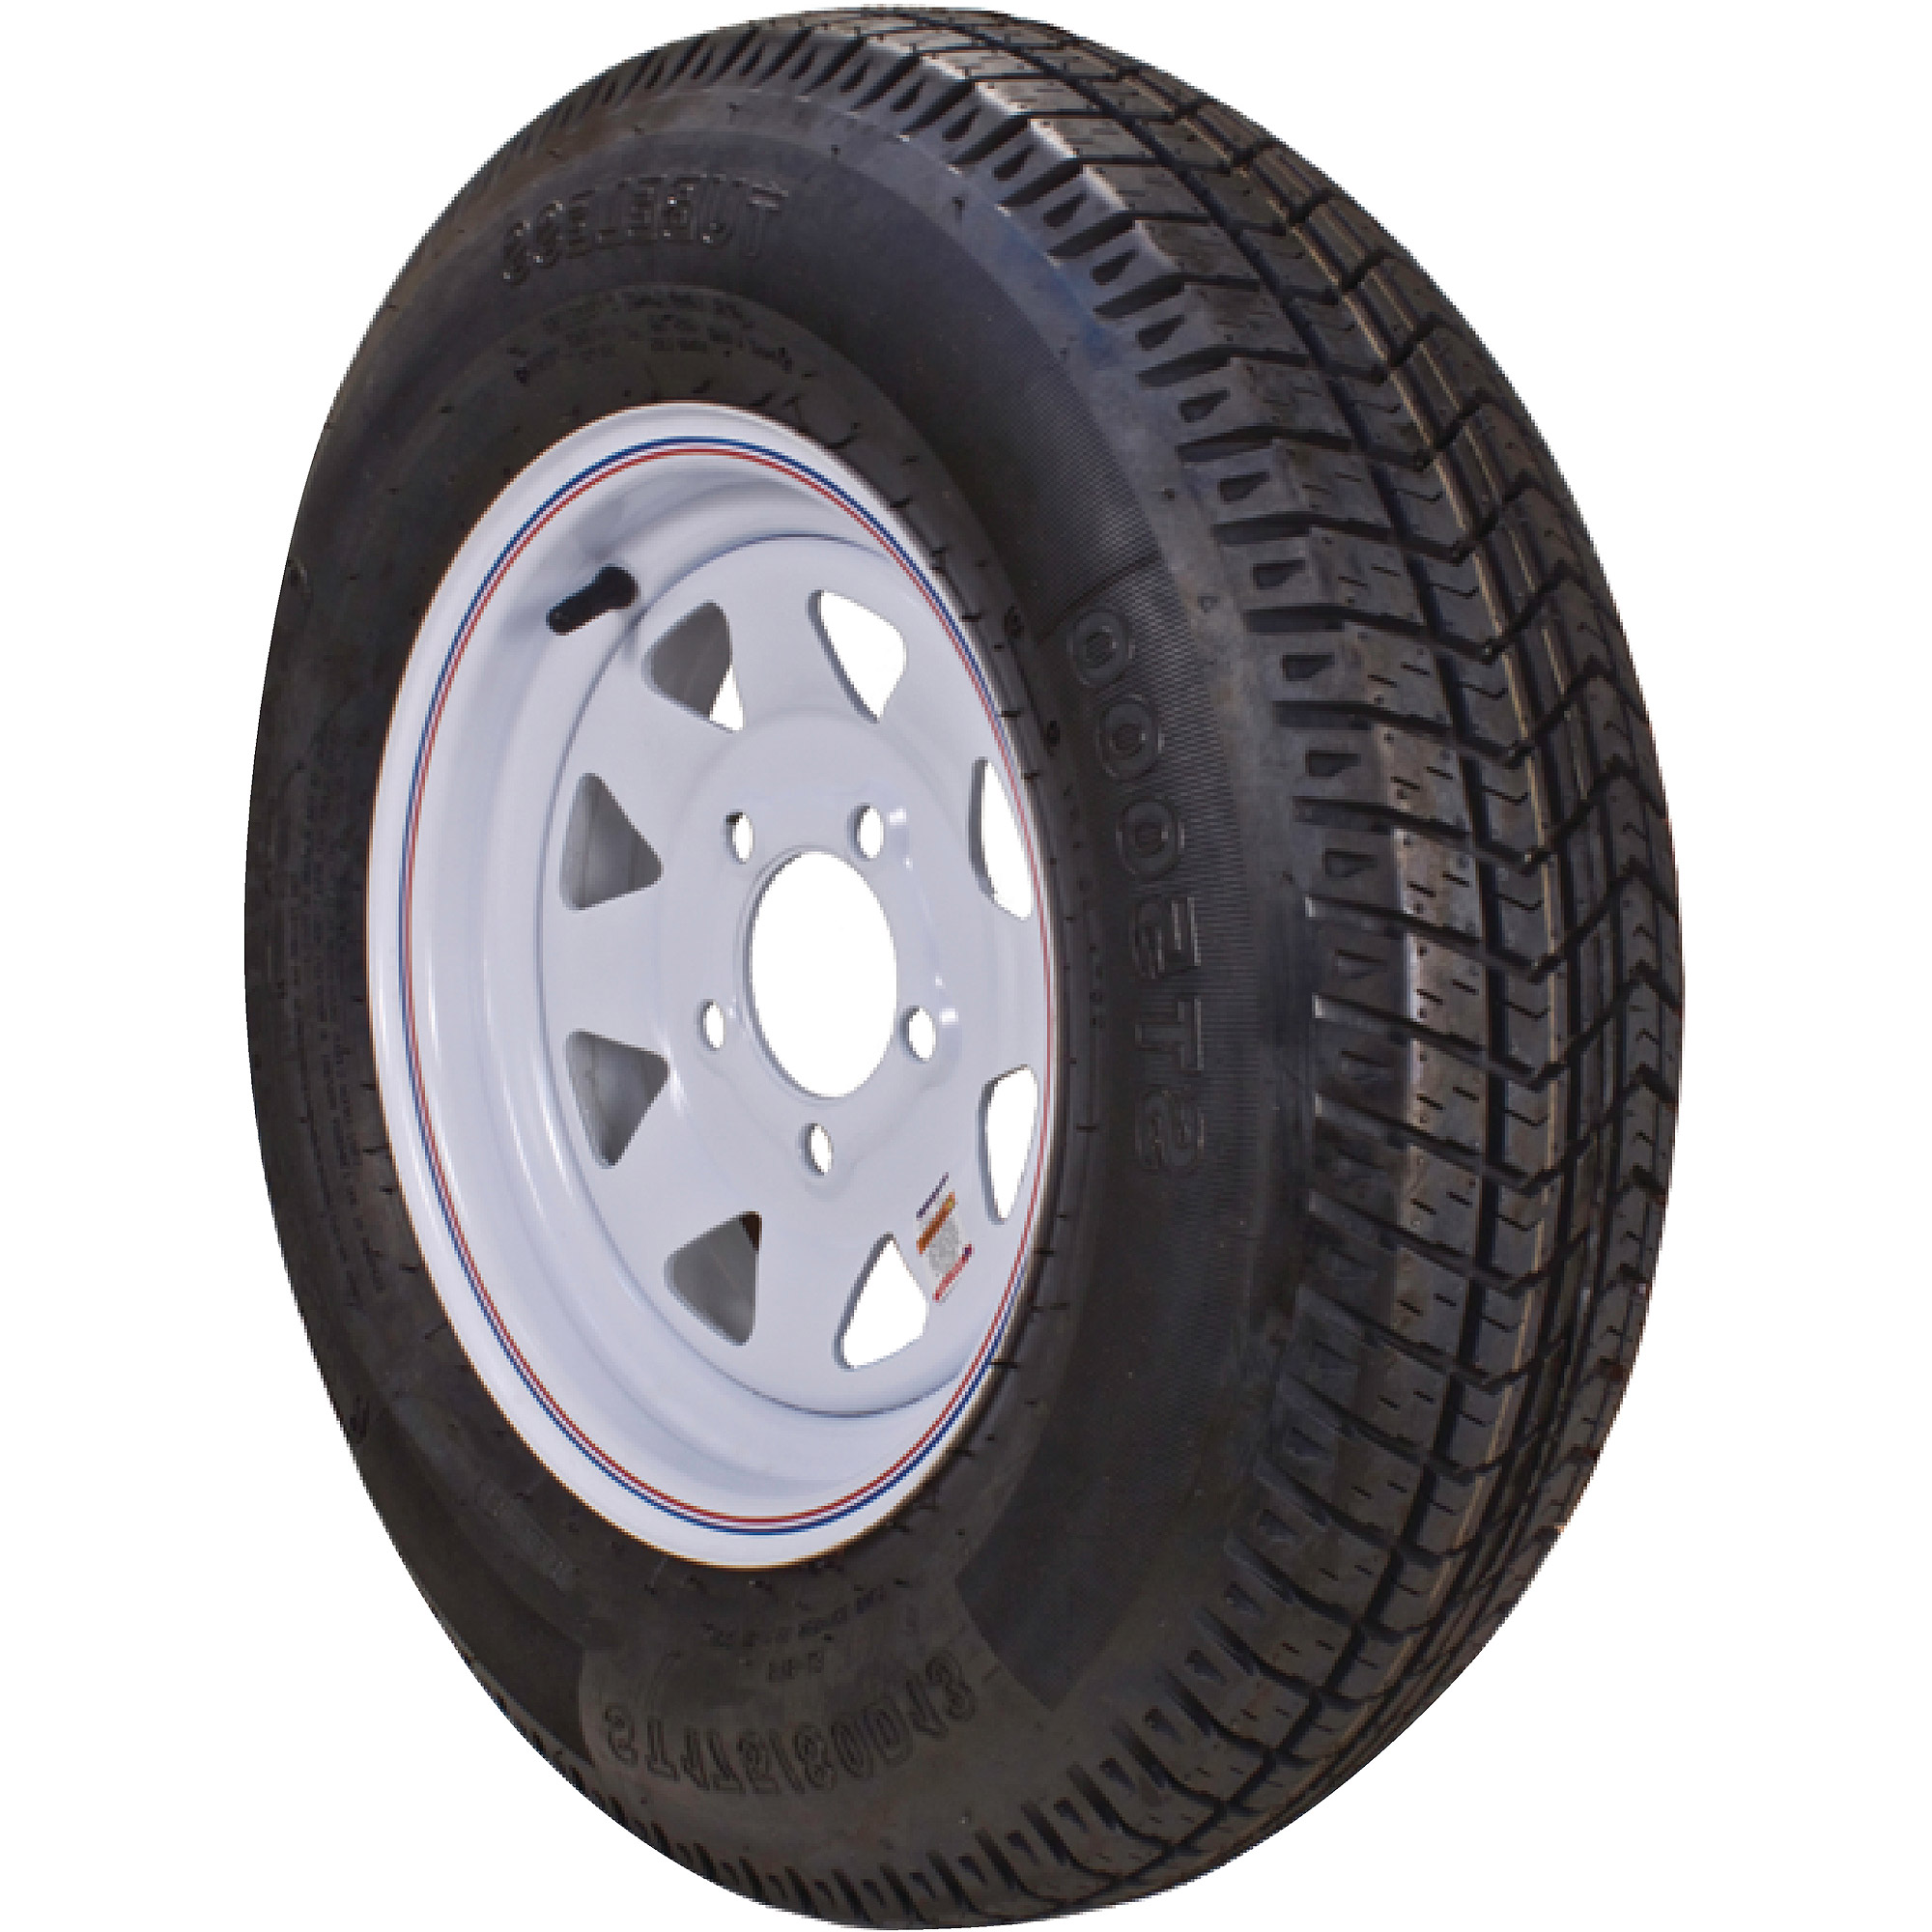 Loadstar bias tire and wheel rim assembly 480 12 5 hole 4 ply